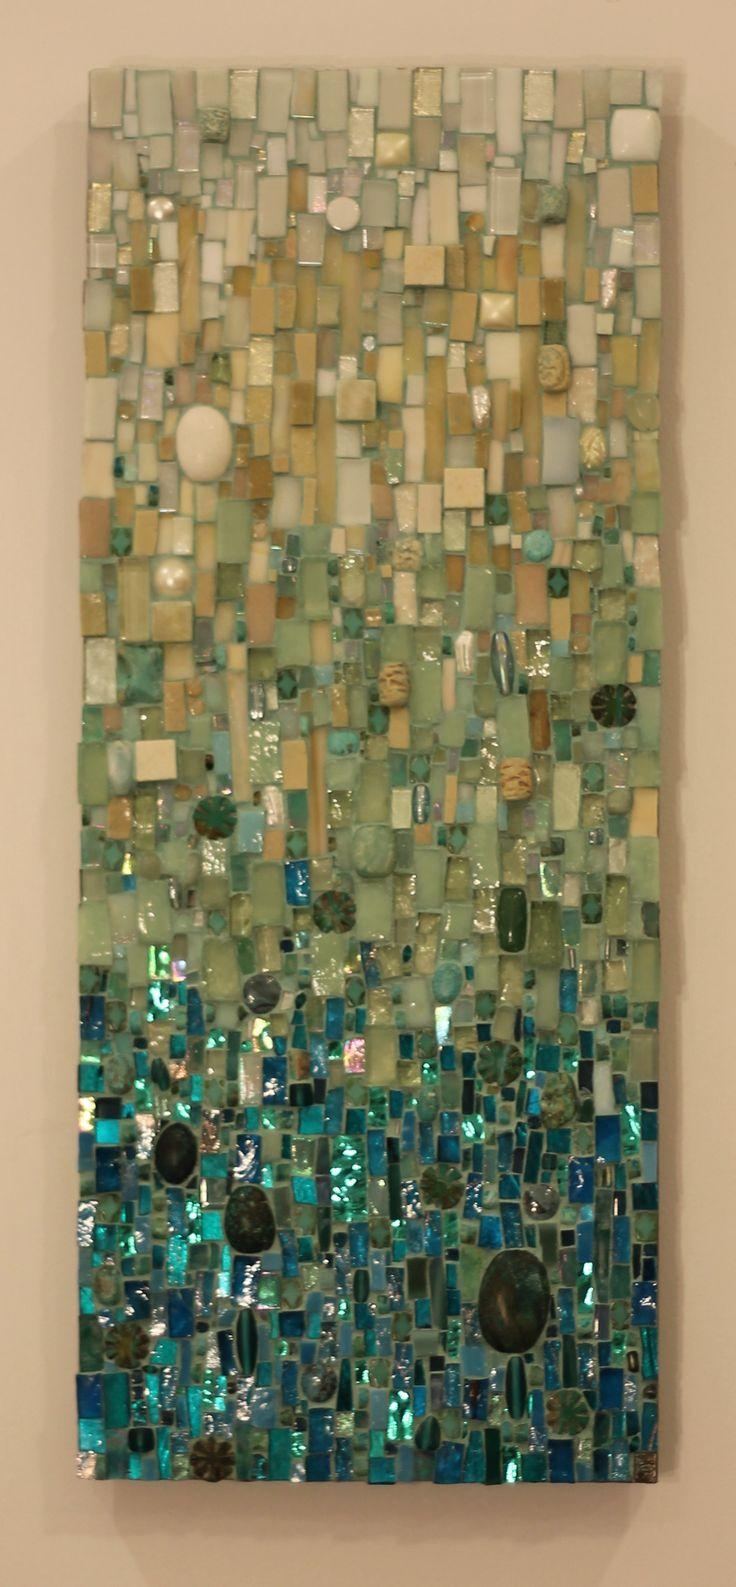 Best 25+ Mosaic Art Ideas On Pinterest | Mosaics, Mosaic And Pertaining To Glass Wall Artworks (View 17 of 20)